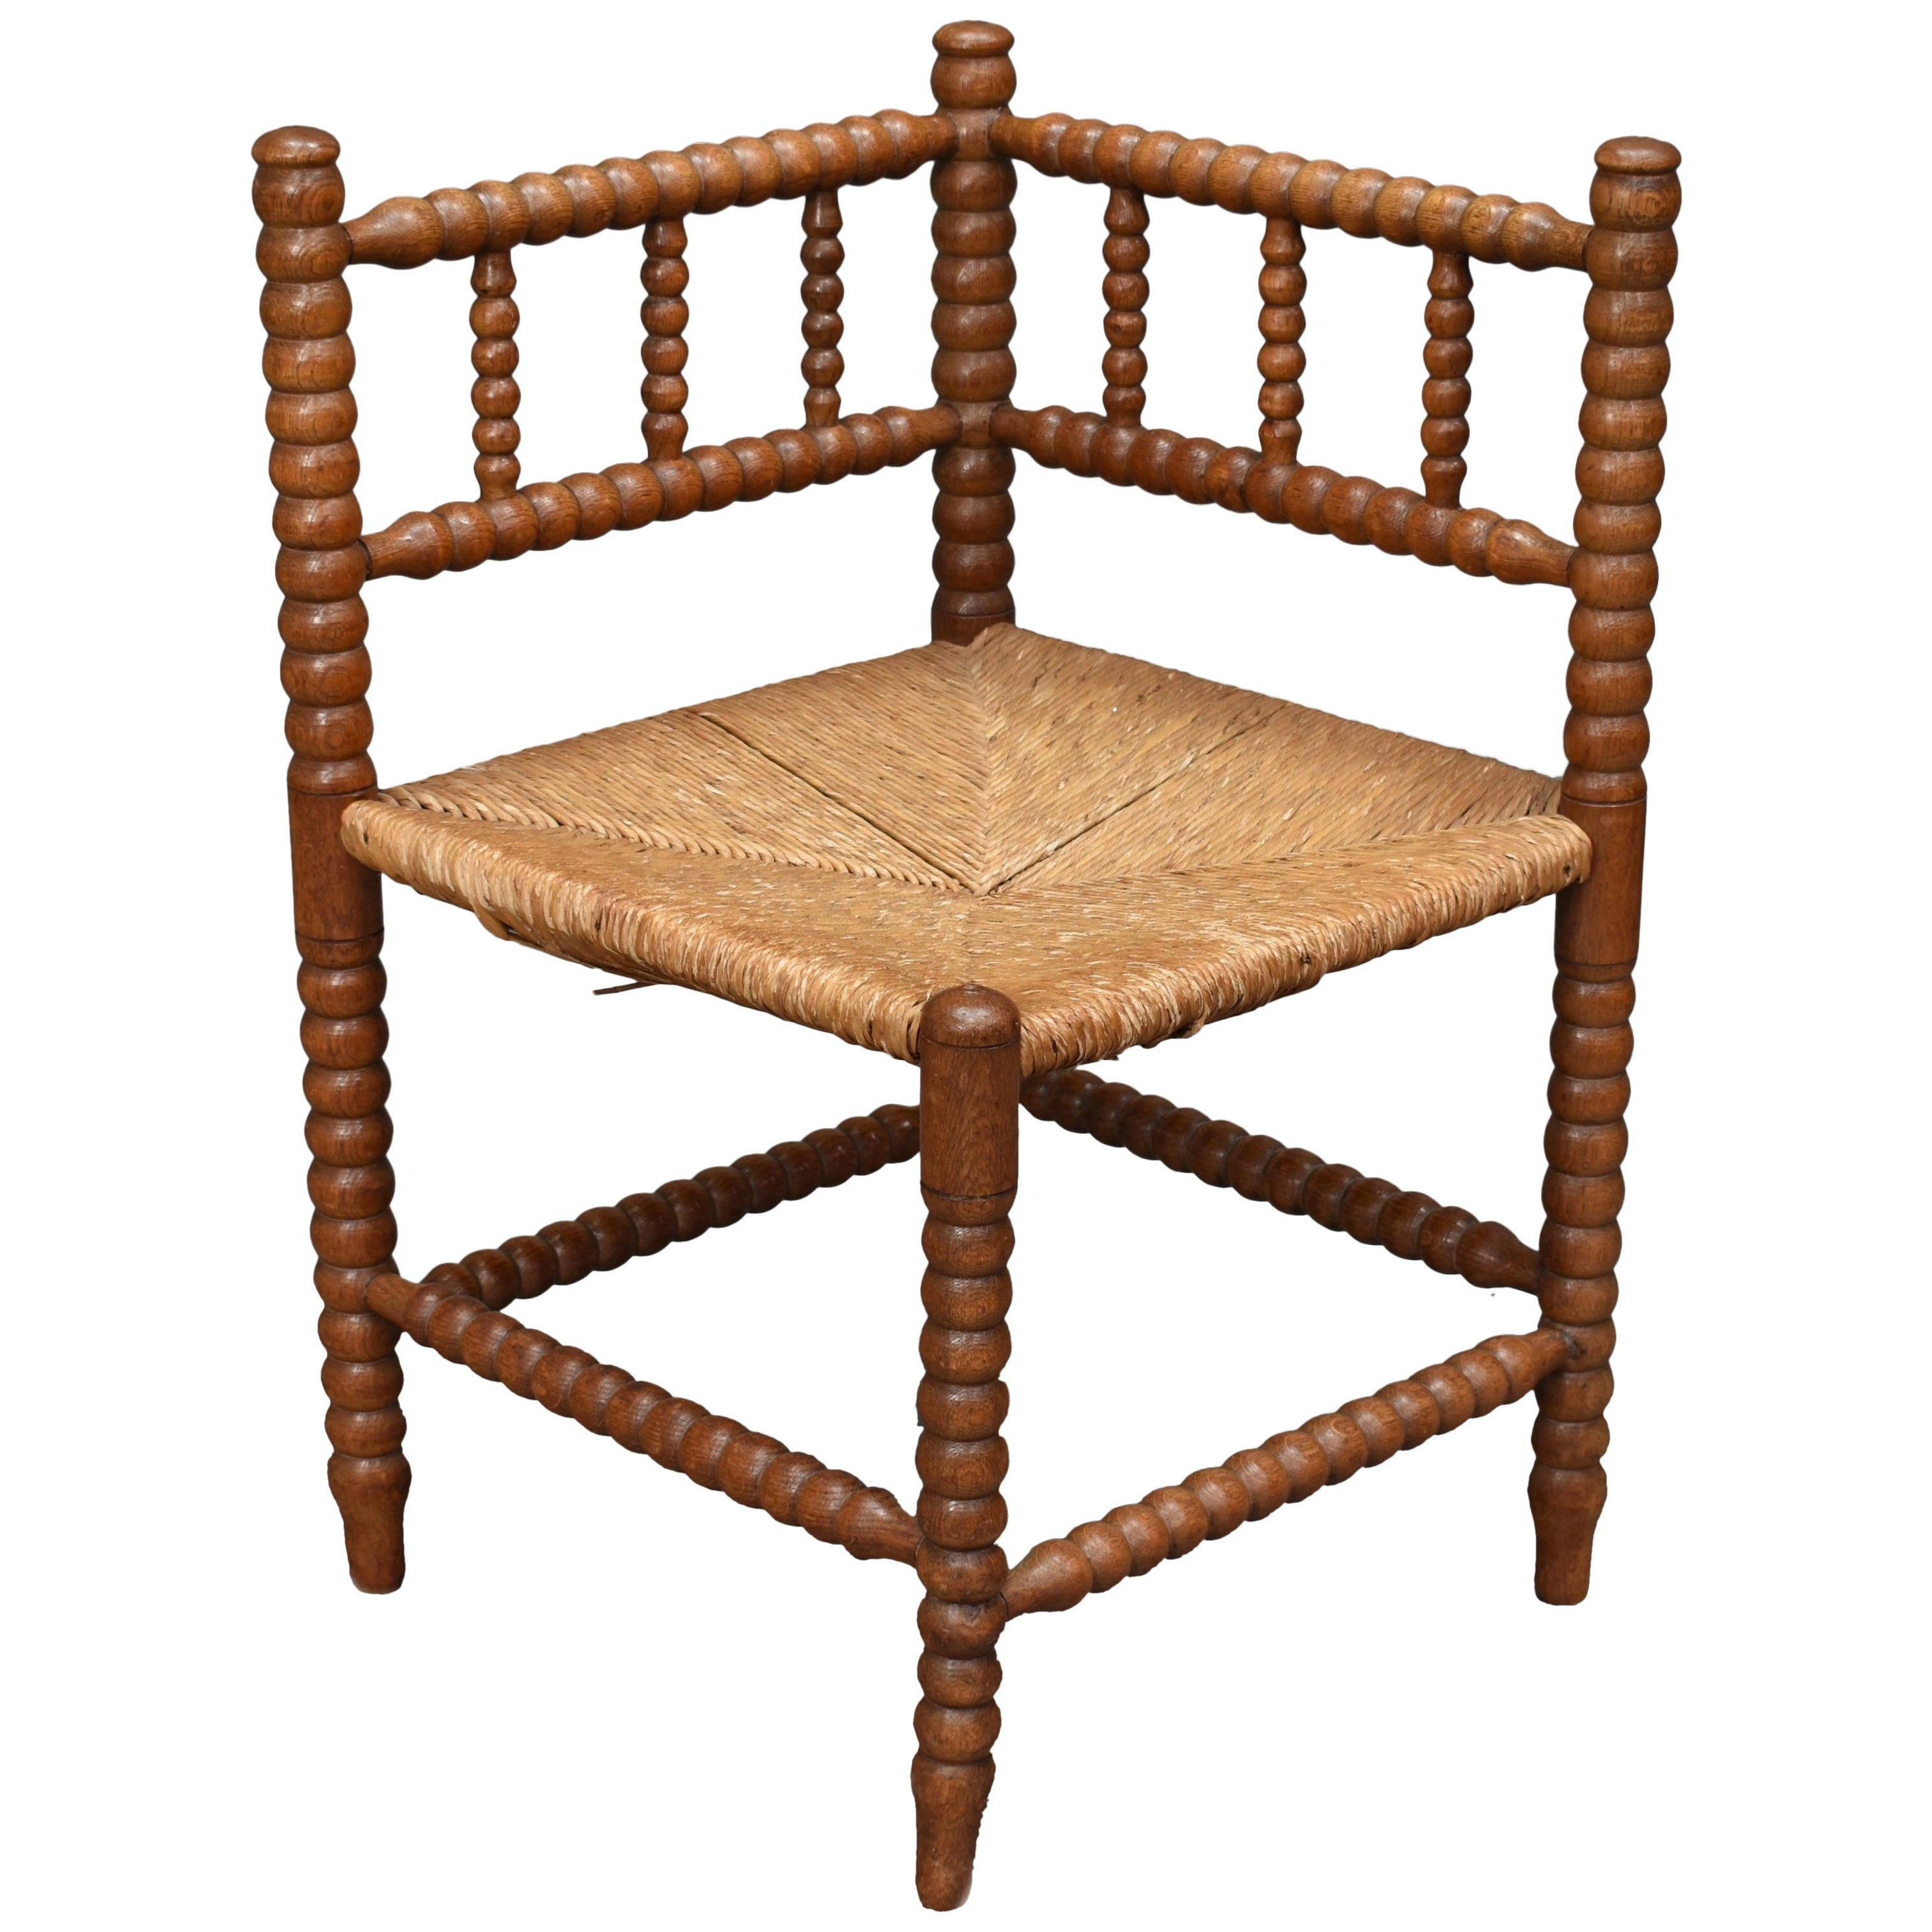 Stunning French Corner Chair in Turned Oak and Cane, France, 1930-1940